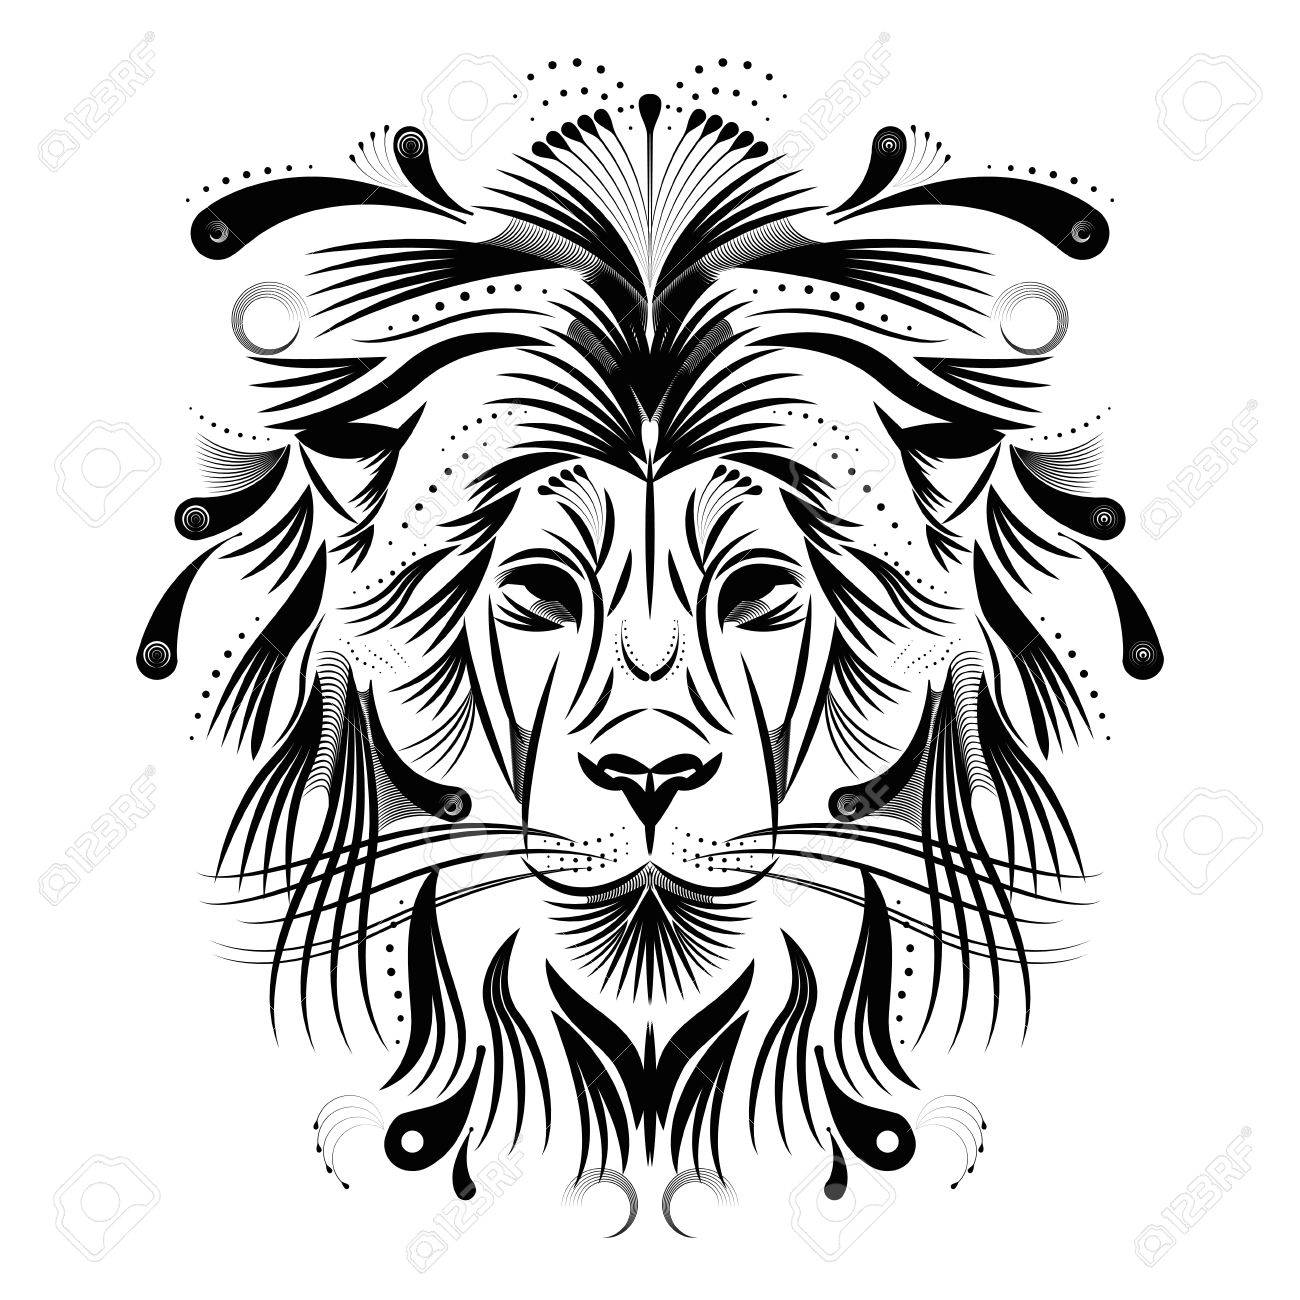 Isolated Outline Of A Lion Face Vector Illustration Royalty Free Cliparts Vectors And Stock Illustration Image 83219517 Select from premium lion head vector images of the highest quality. isolated outline of a lion face vector illustration